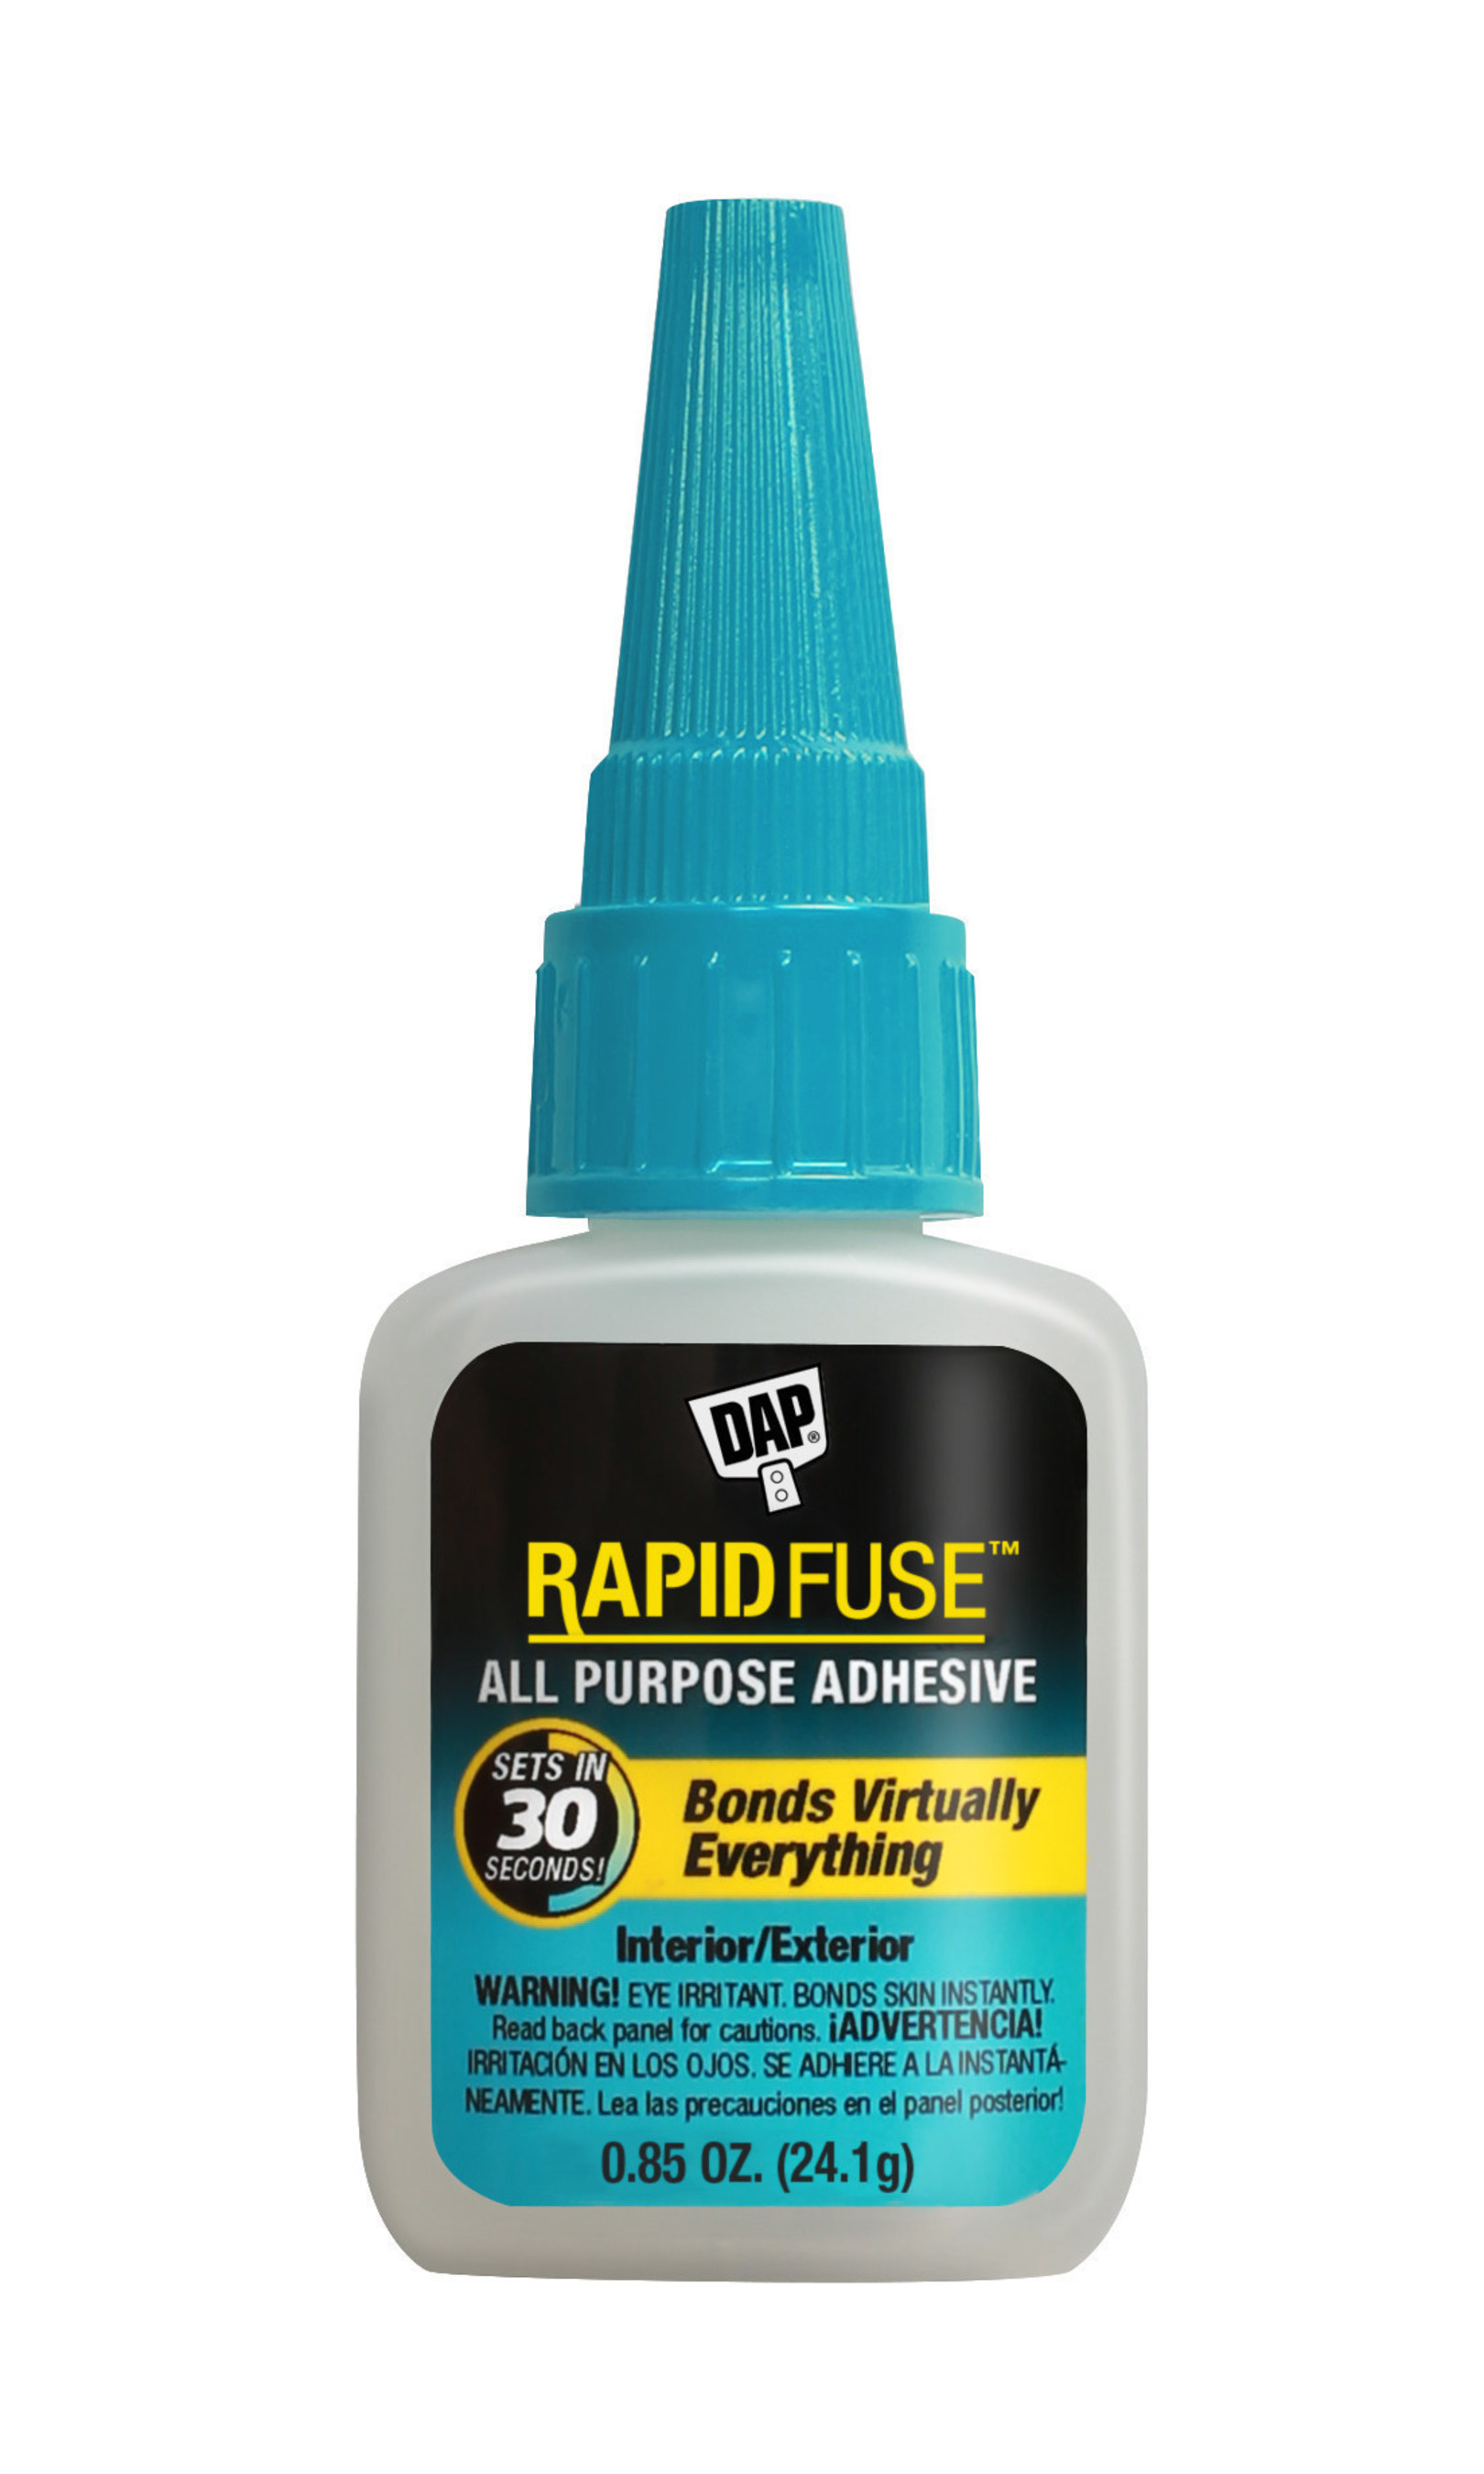 DAP RapidFuse All Purpose Adhesive bonds virtually everything to anything and offers the best end result on home repairs and DIY projects alike.